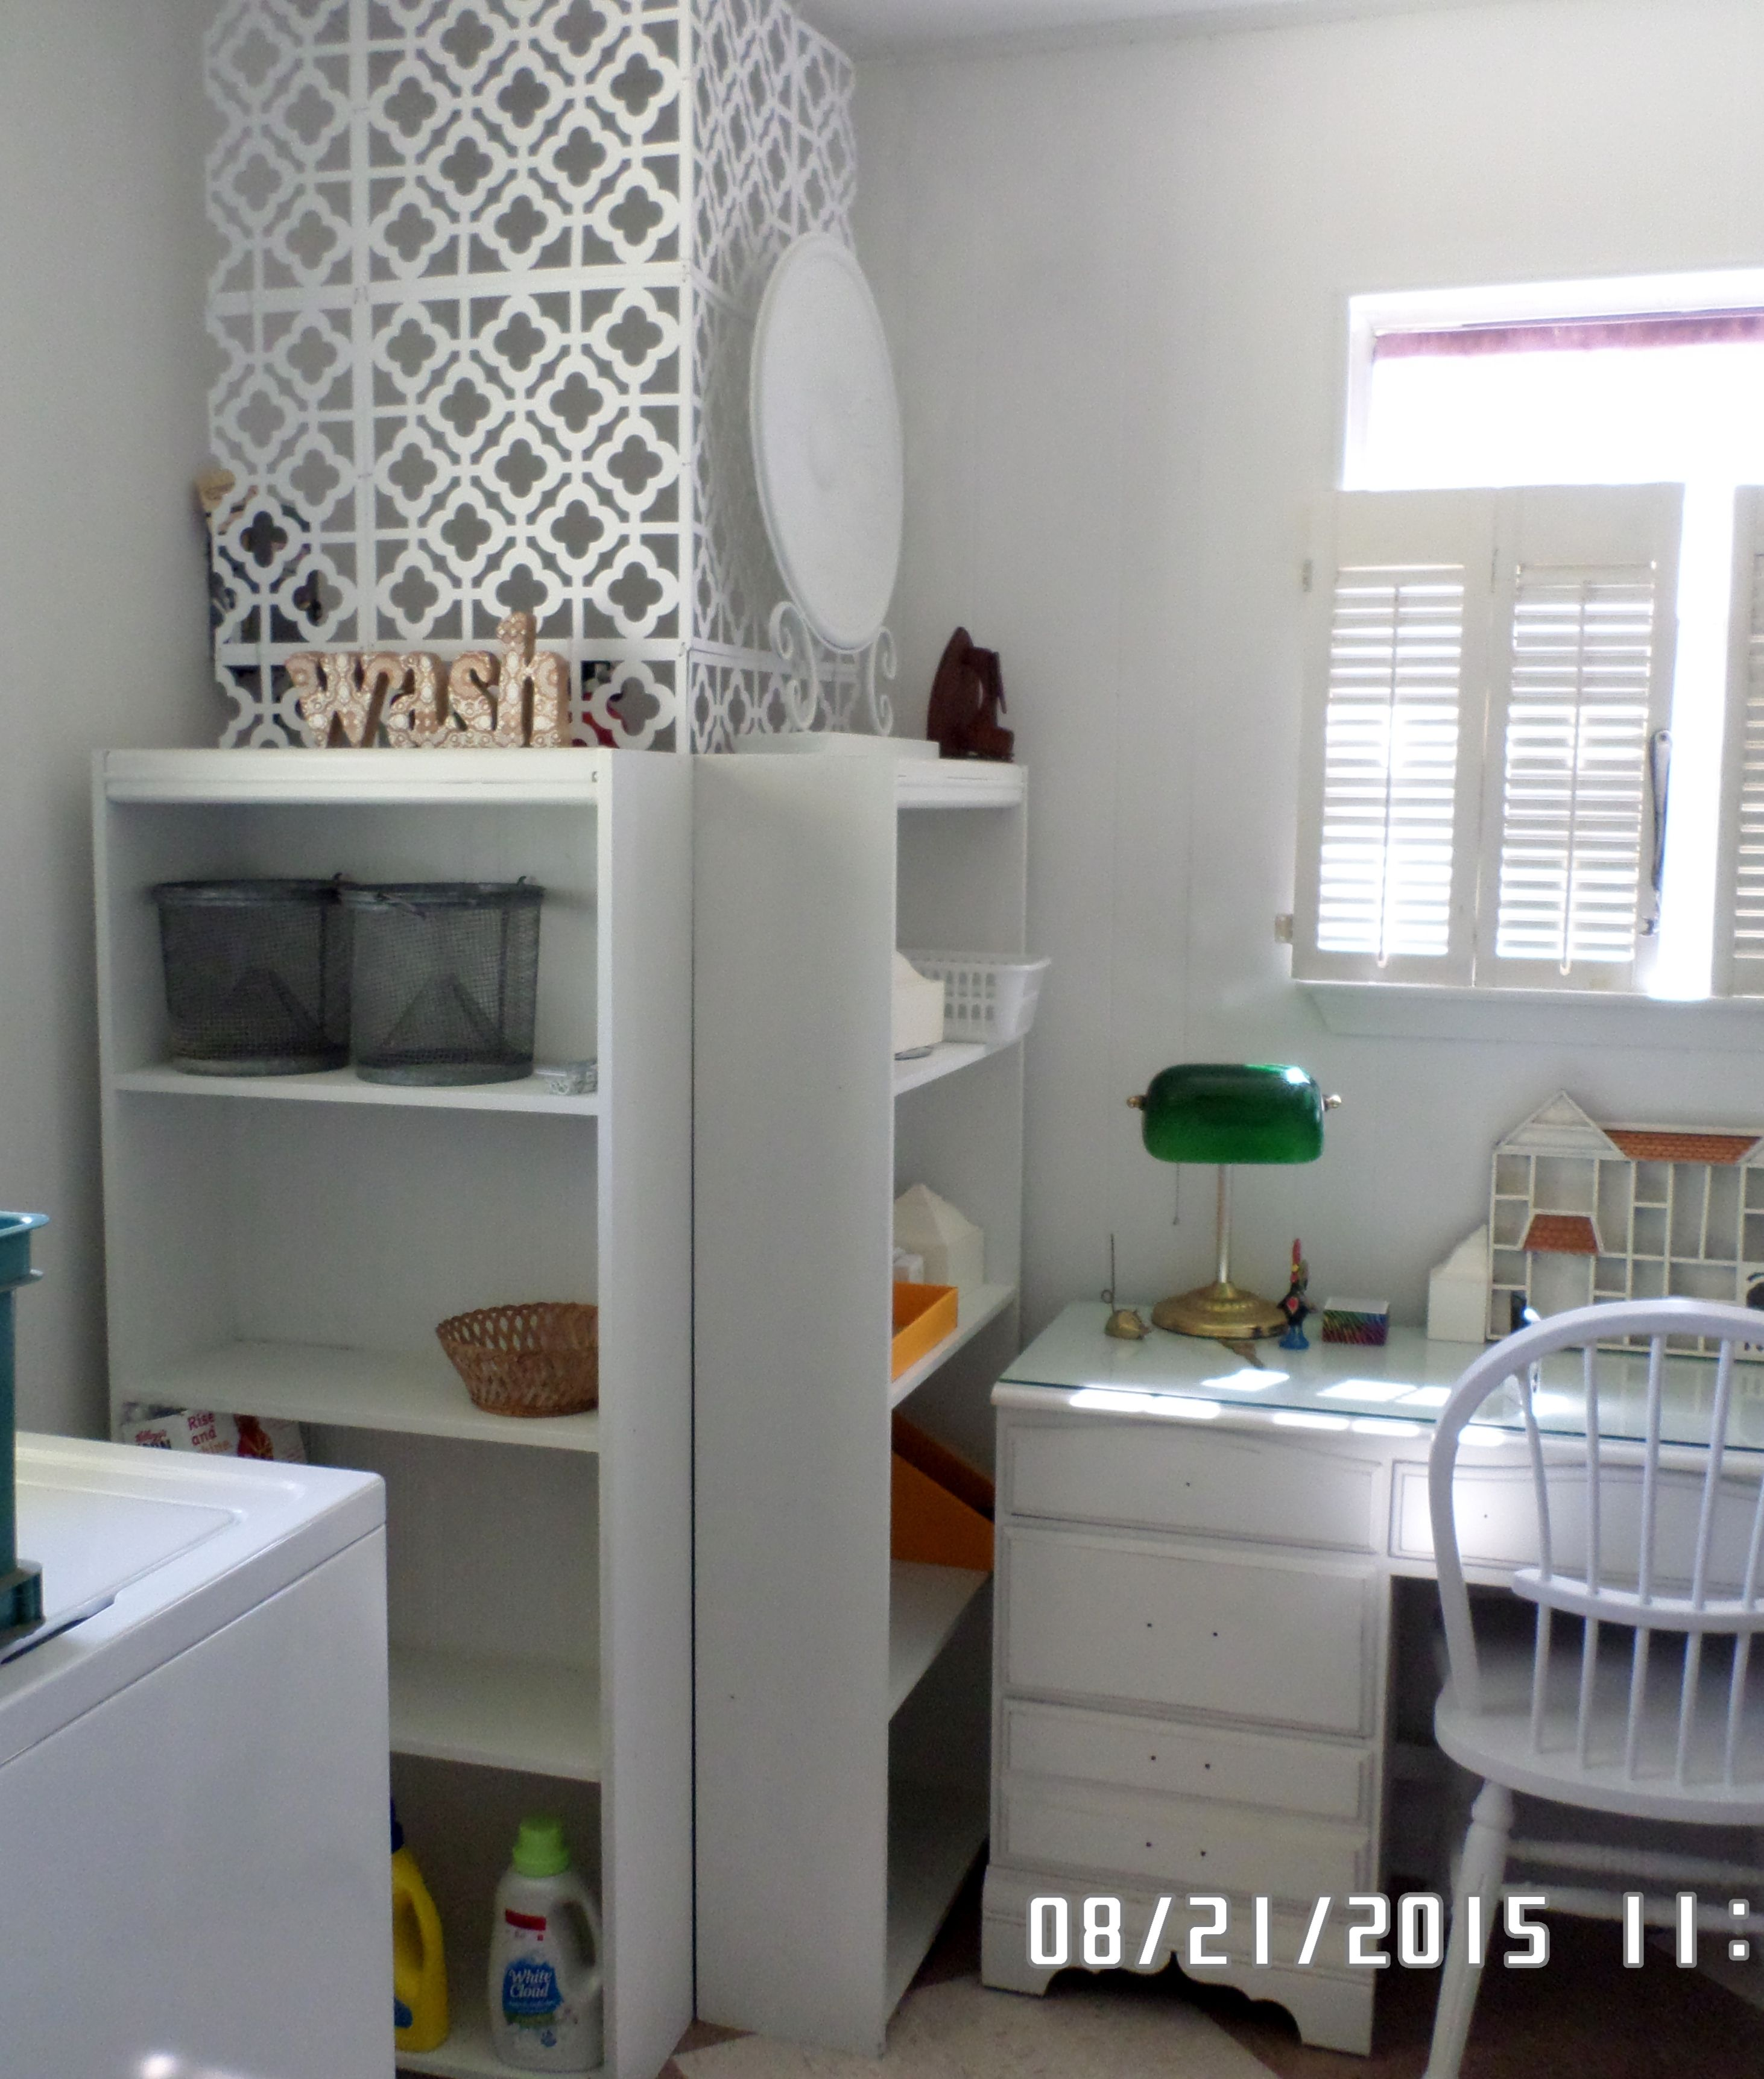 Water heater in bathroom - Hide Water Heater With Cheap Laminate Bookcases Up Cycled With Chalk Paint Beadboard Wallpaper